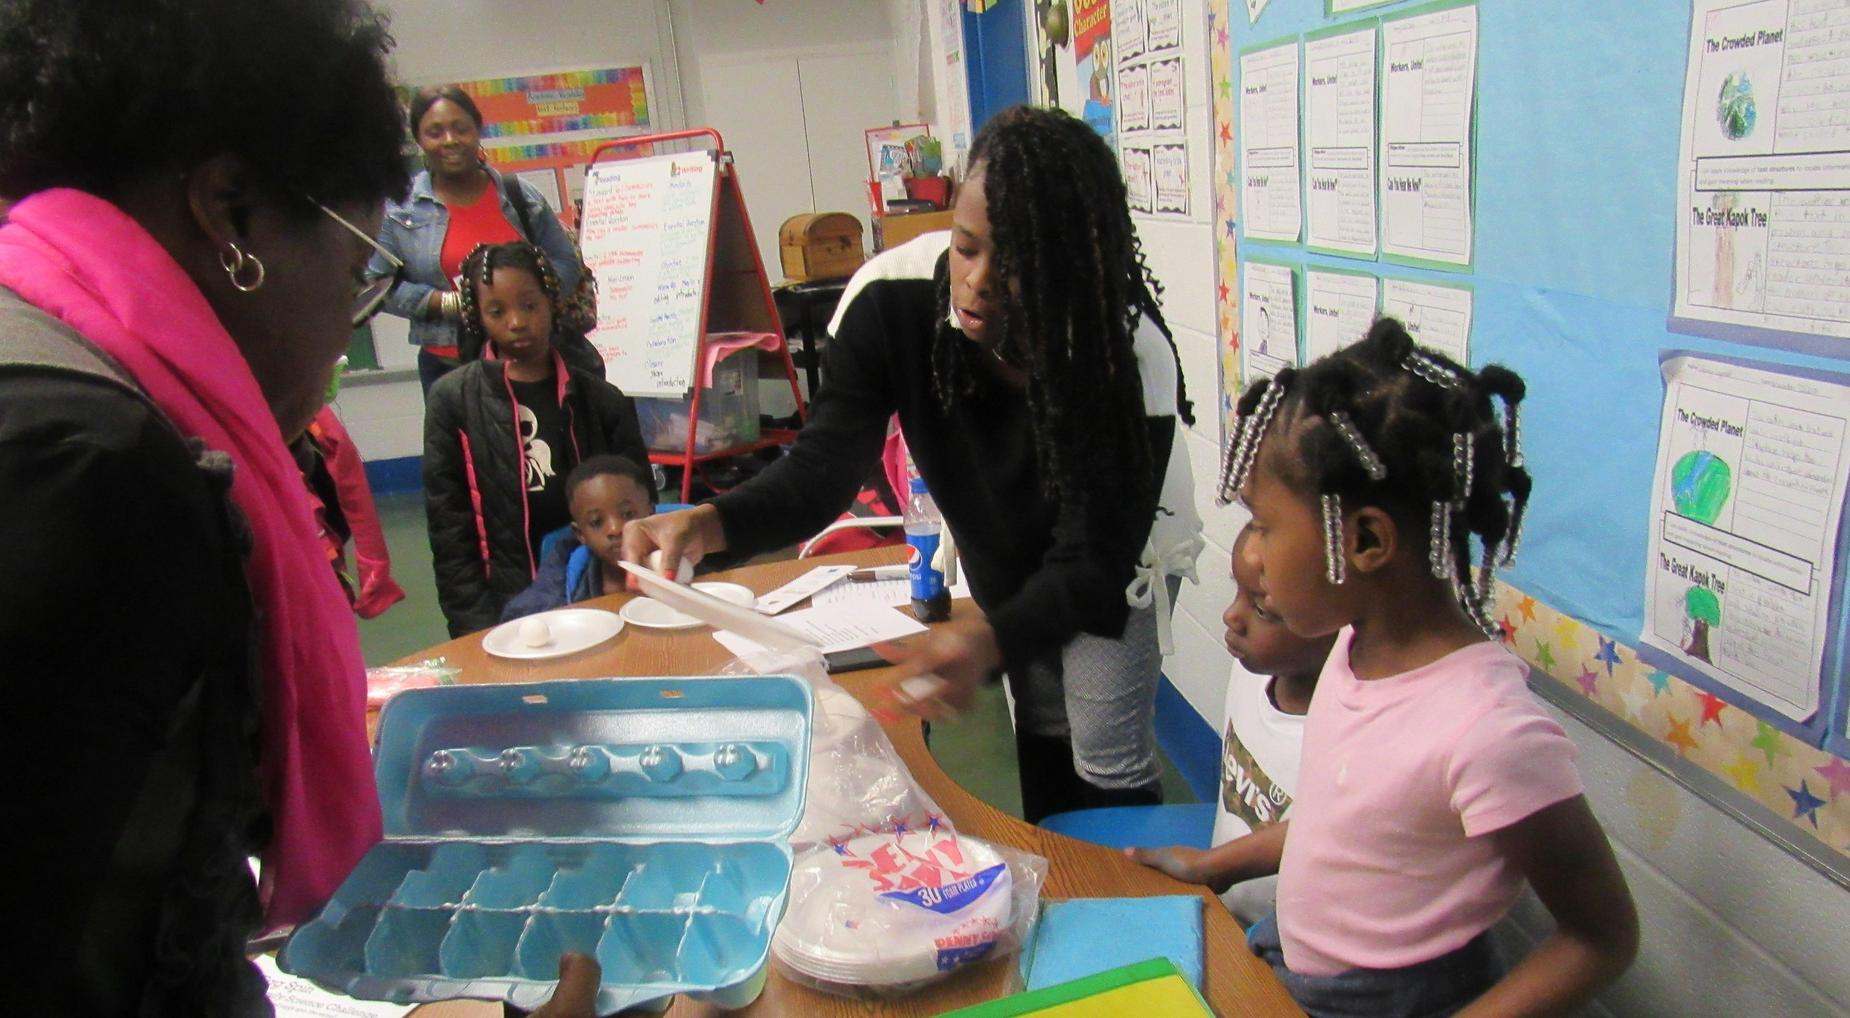 Family STEAM (Science, Technology, Engineering, Art, and Mathematics) Night